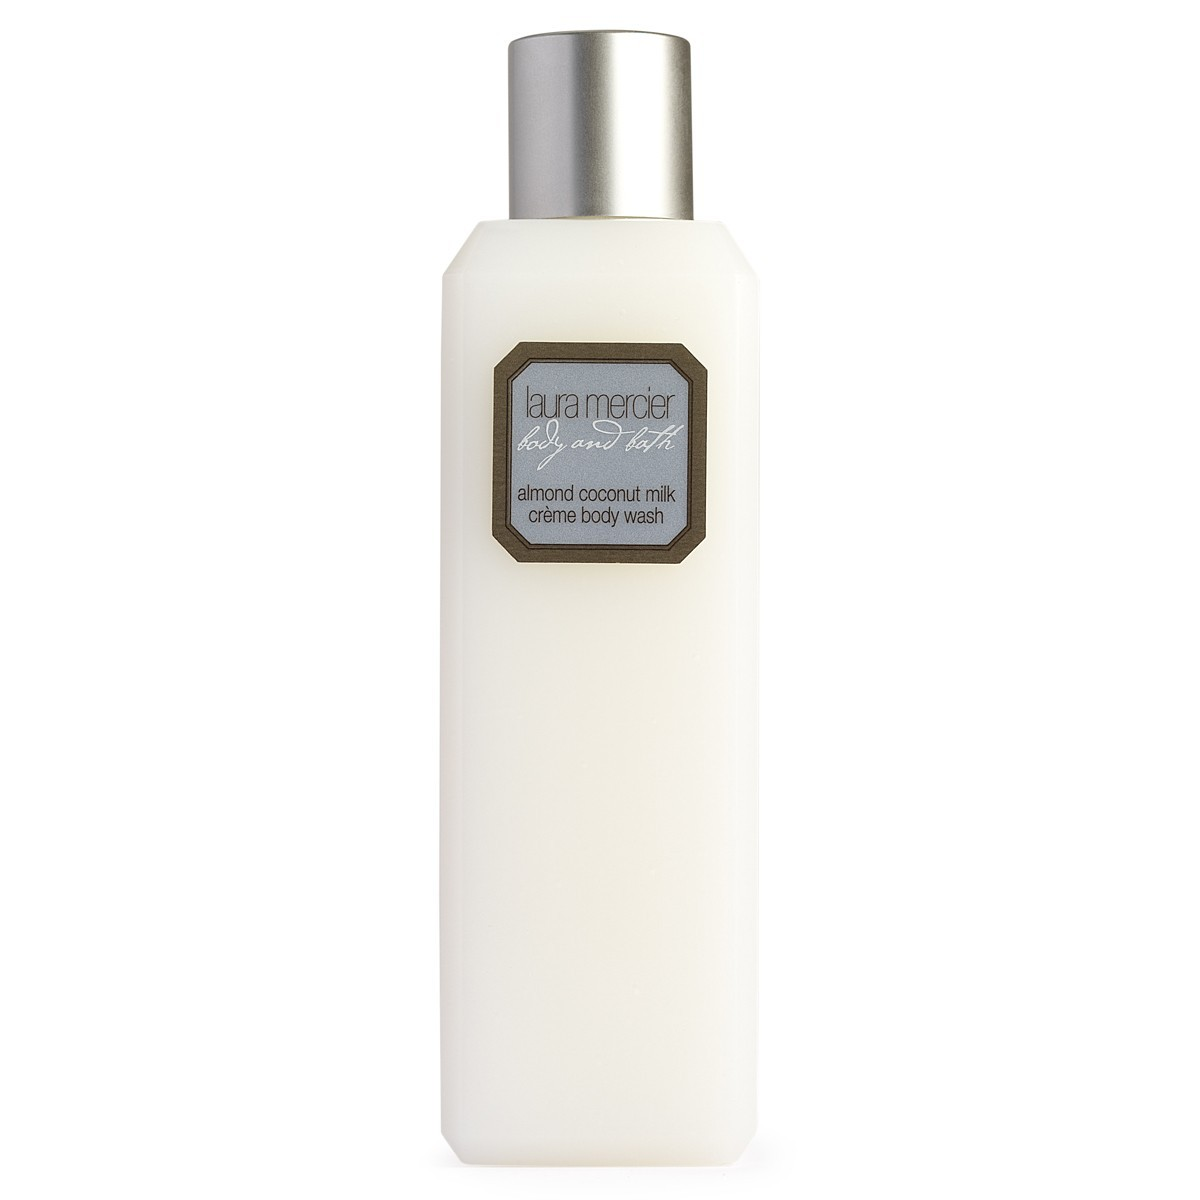 Laura Mercier Almond Coconut Body Wash